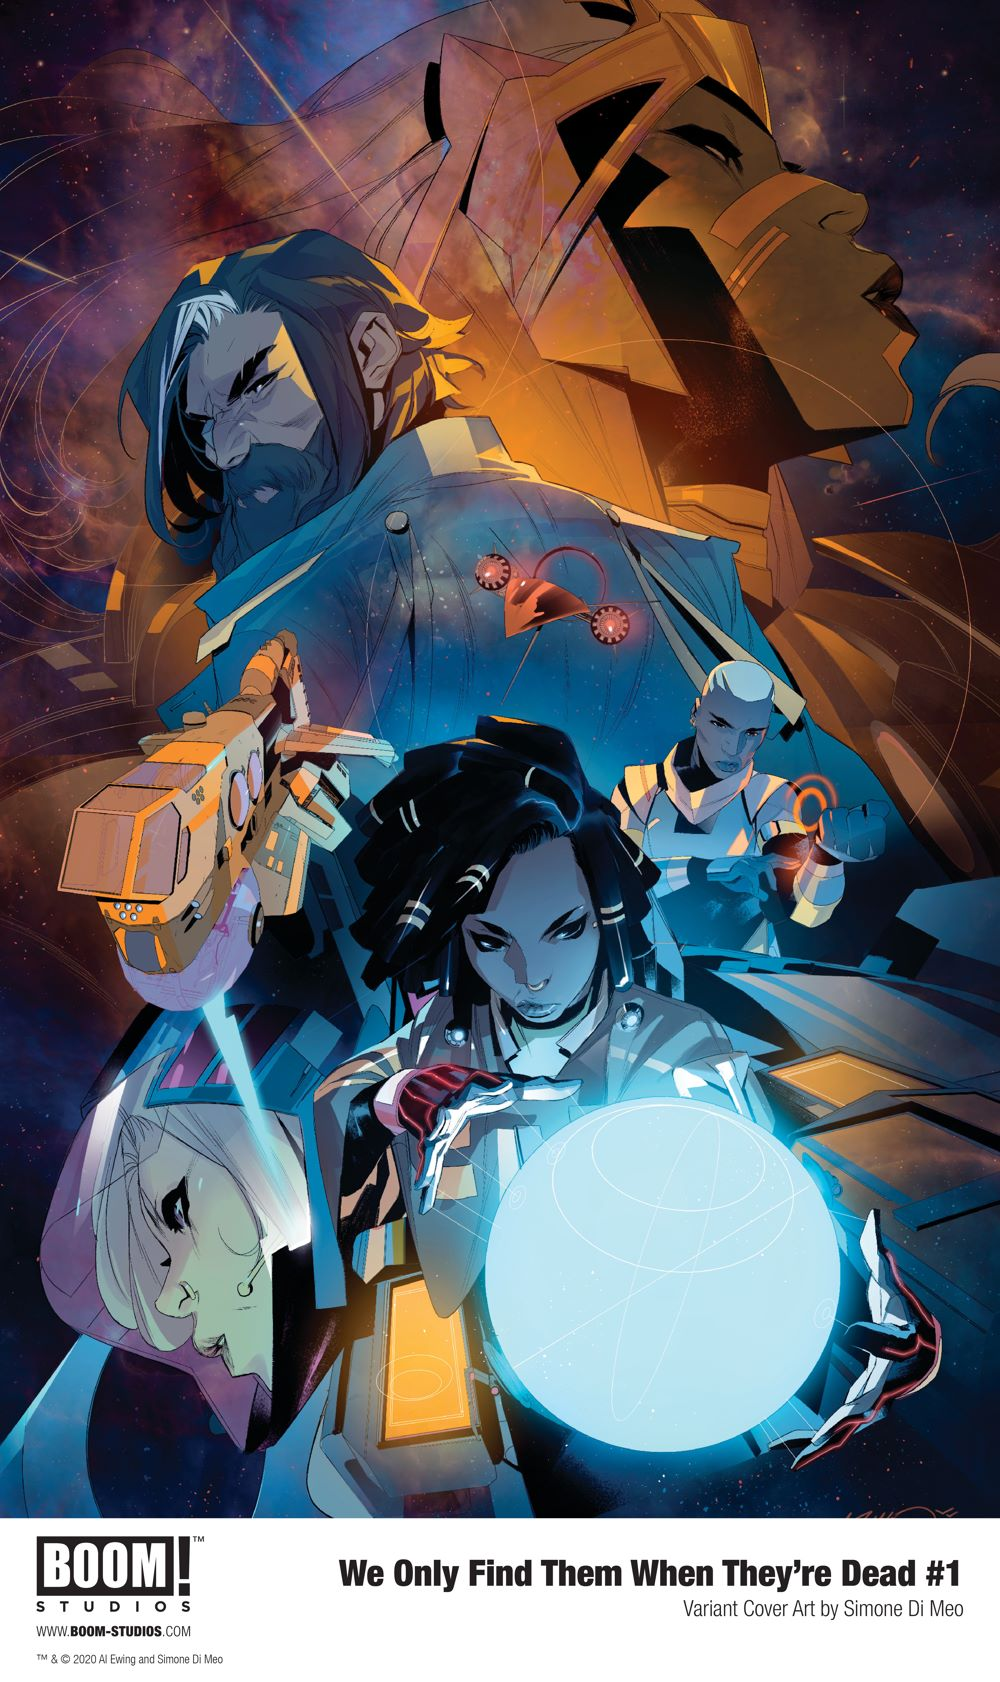 2c5006a2-f86e-4a7e-b8d6-47539cea8b23 ComicList: BOOM! Studios New Releases for 09/02/2020